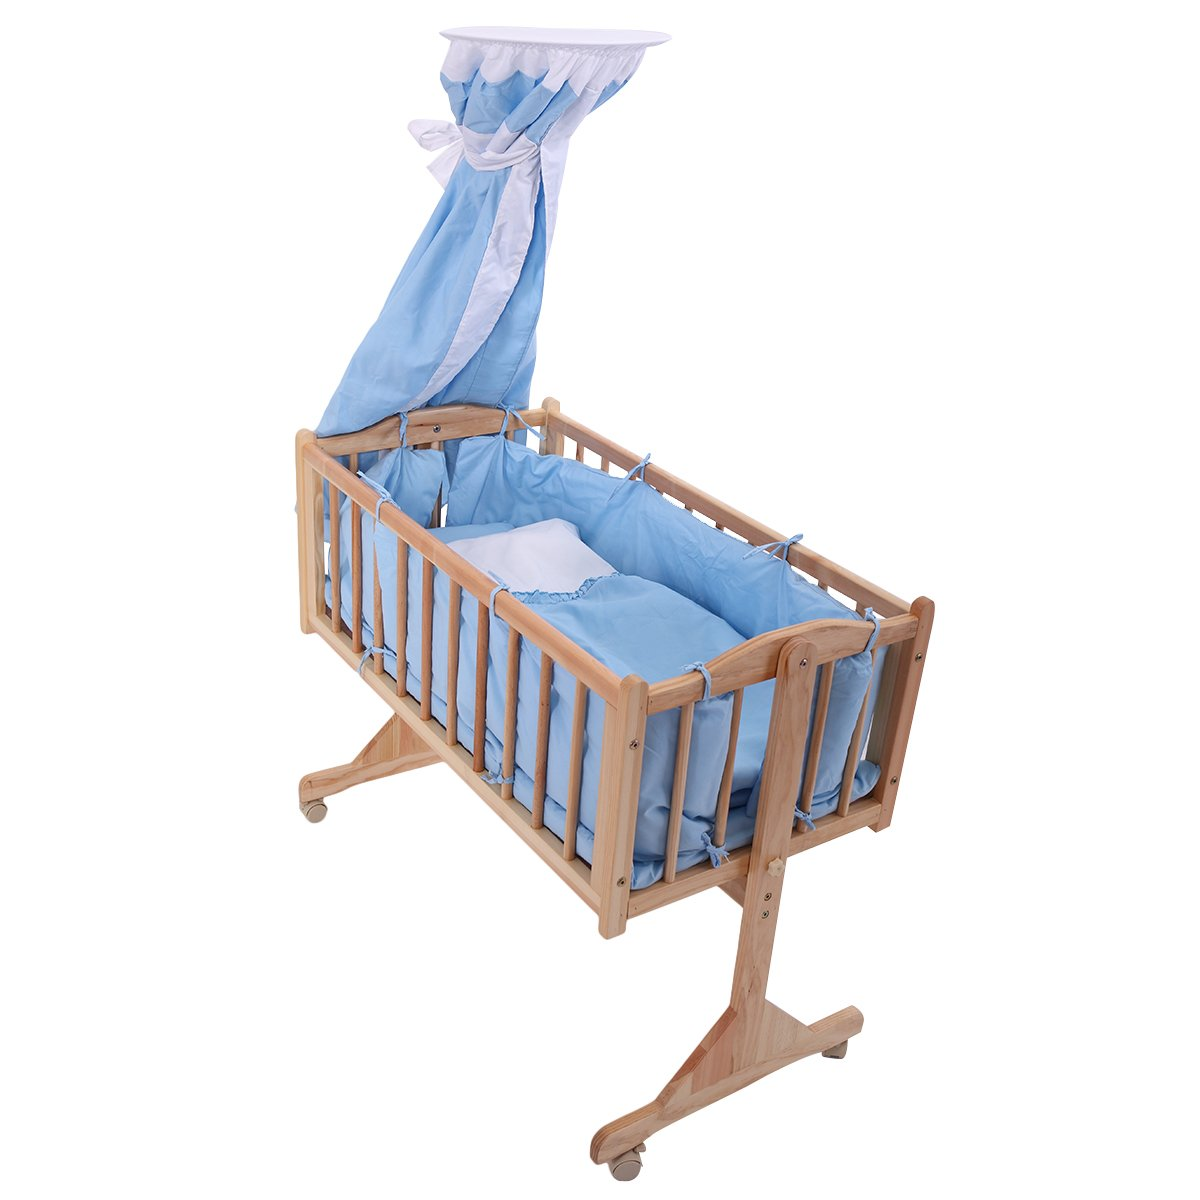 JAXPETY Wood Baby Cradle Rocking Crib Bassinet Bed Sleeper Portable Nursery Blue by JAXPETY (Image #5)